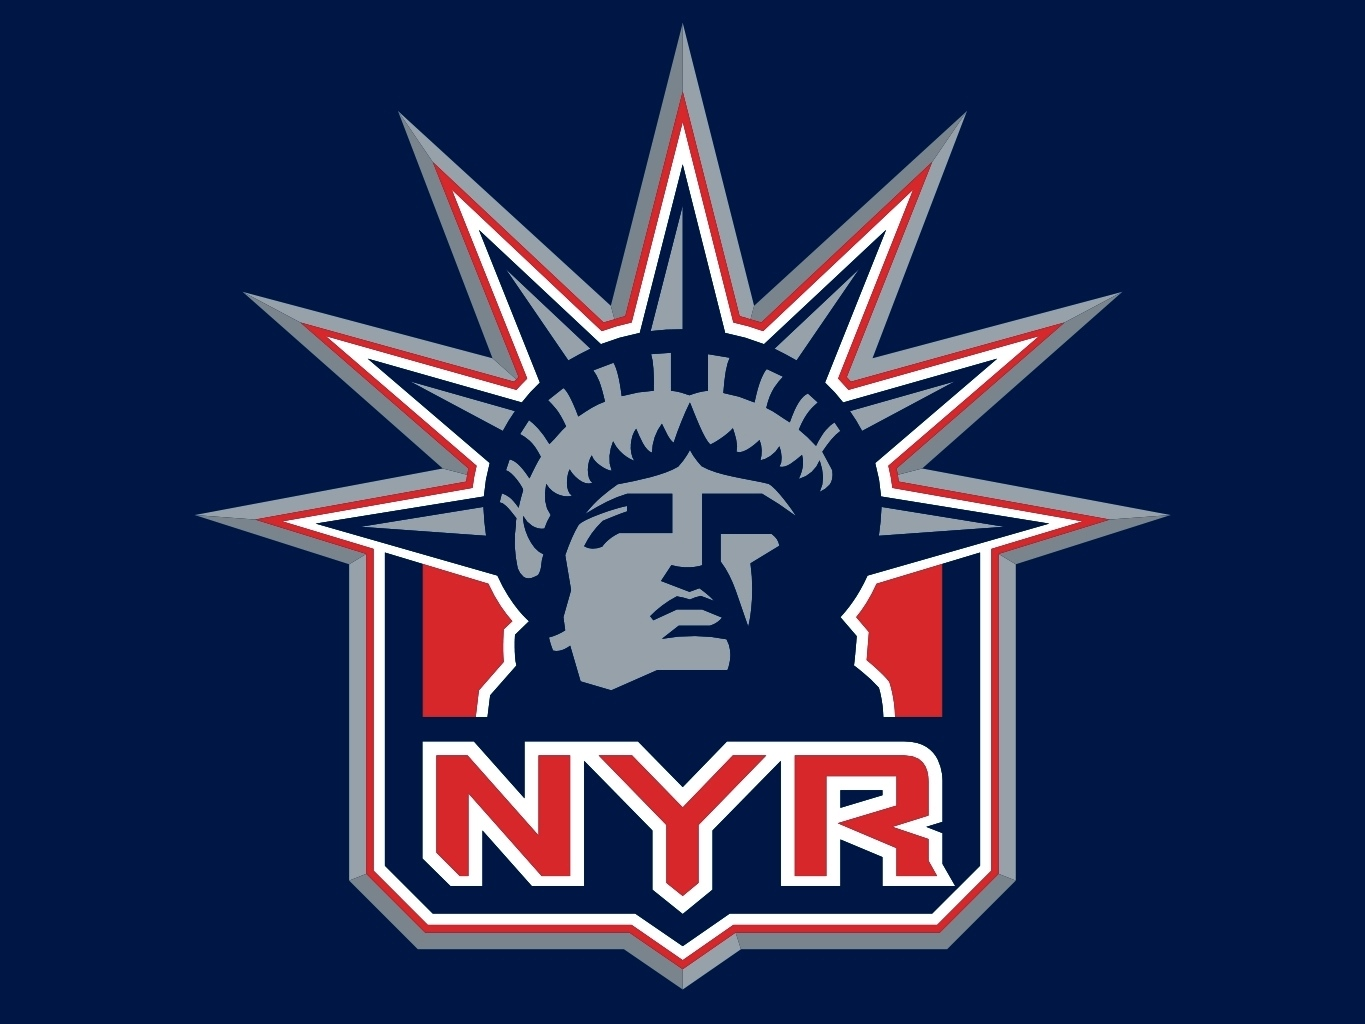 48 Ny Rangers Logo Wallpaper On Wallpapersafari